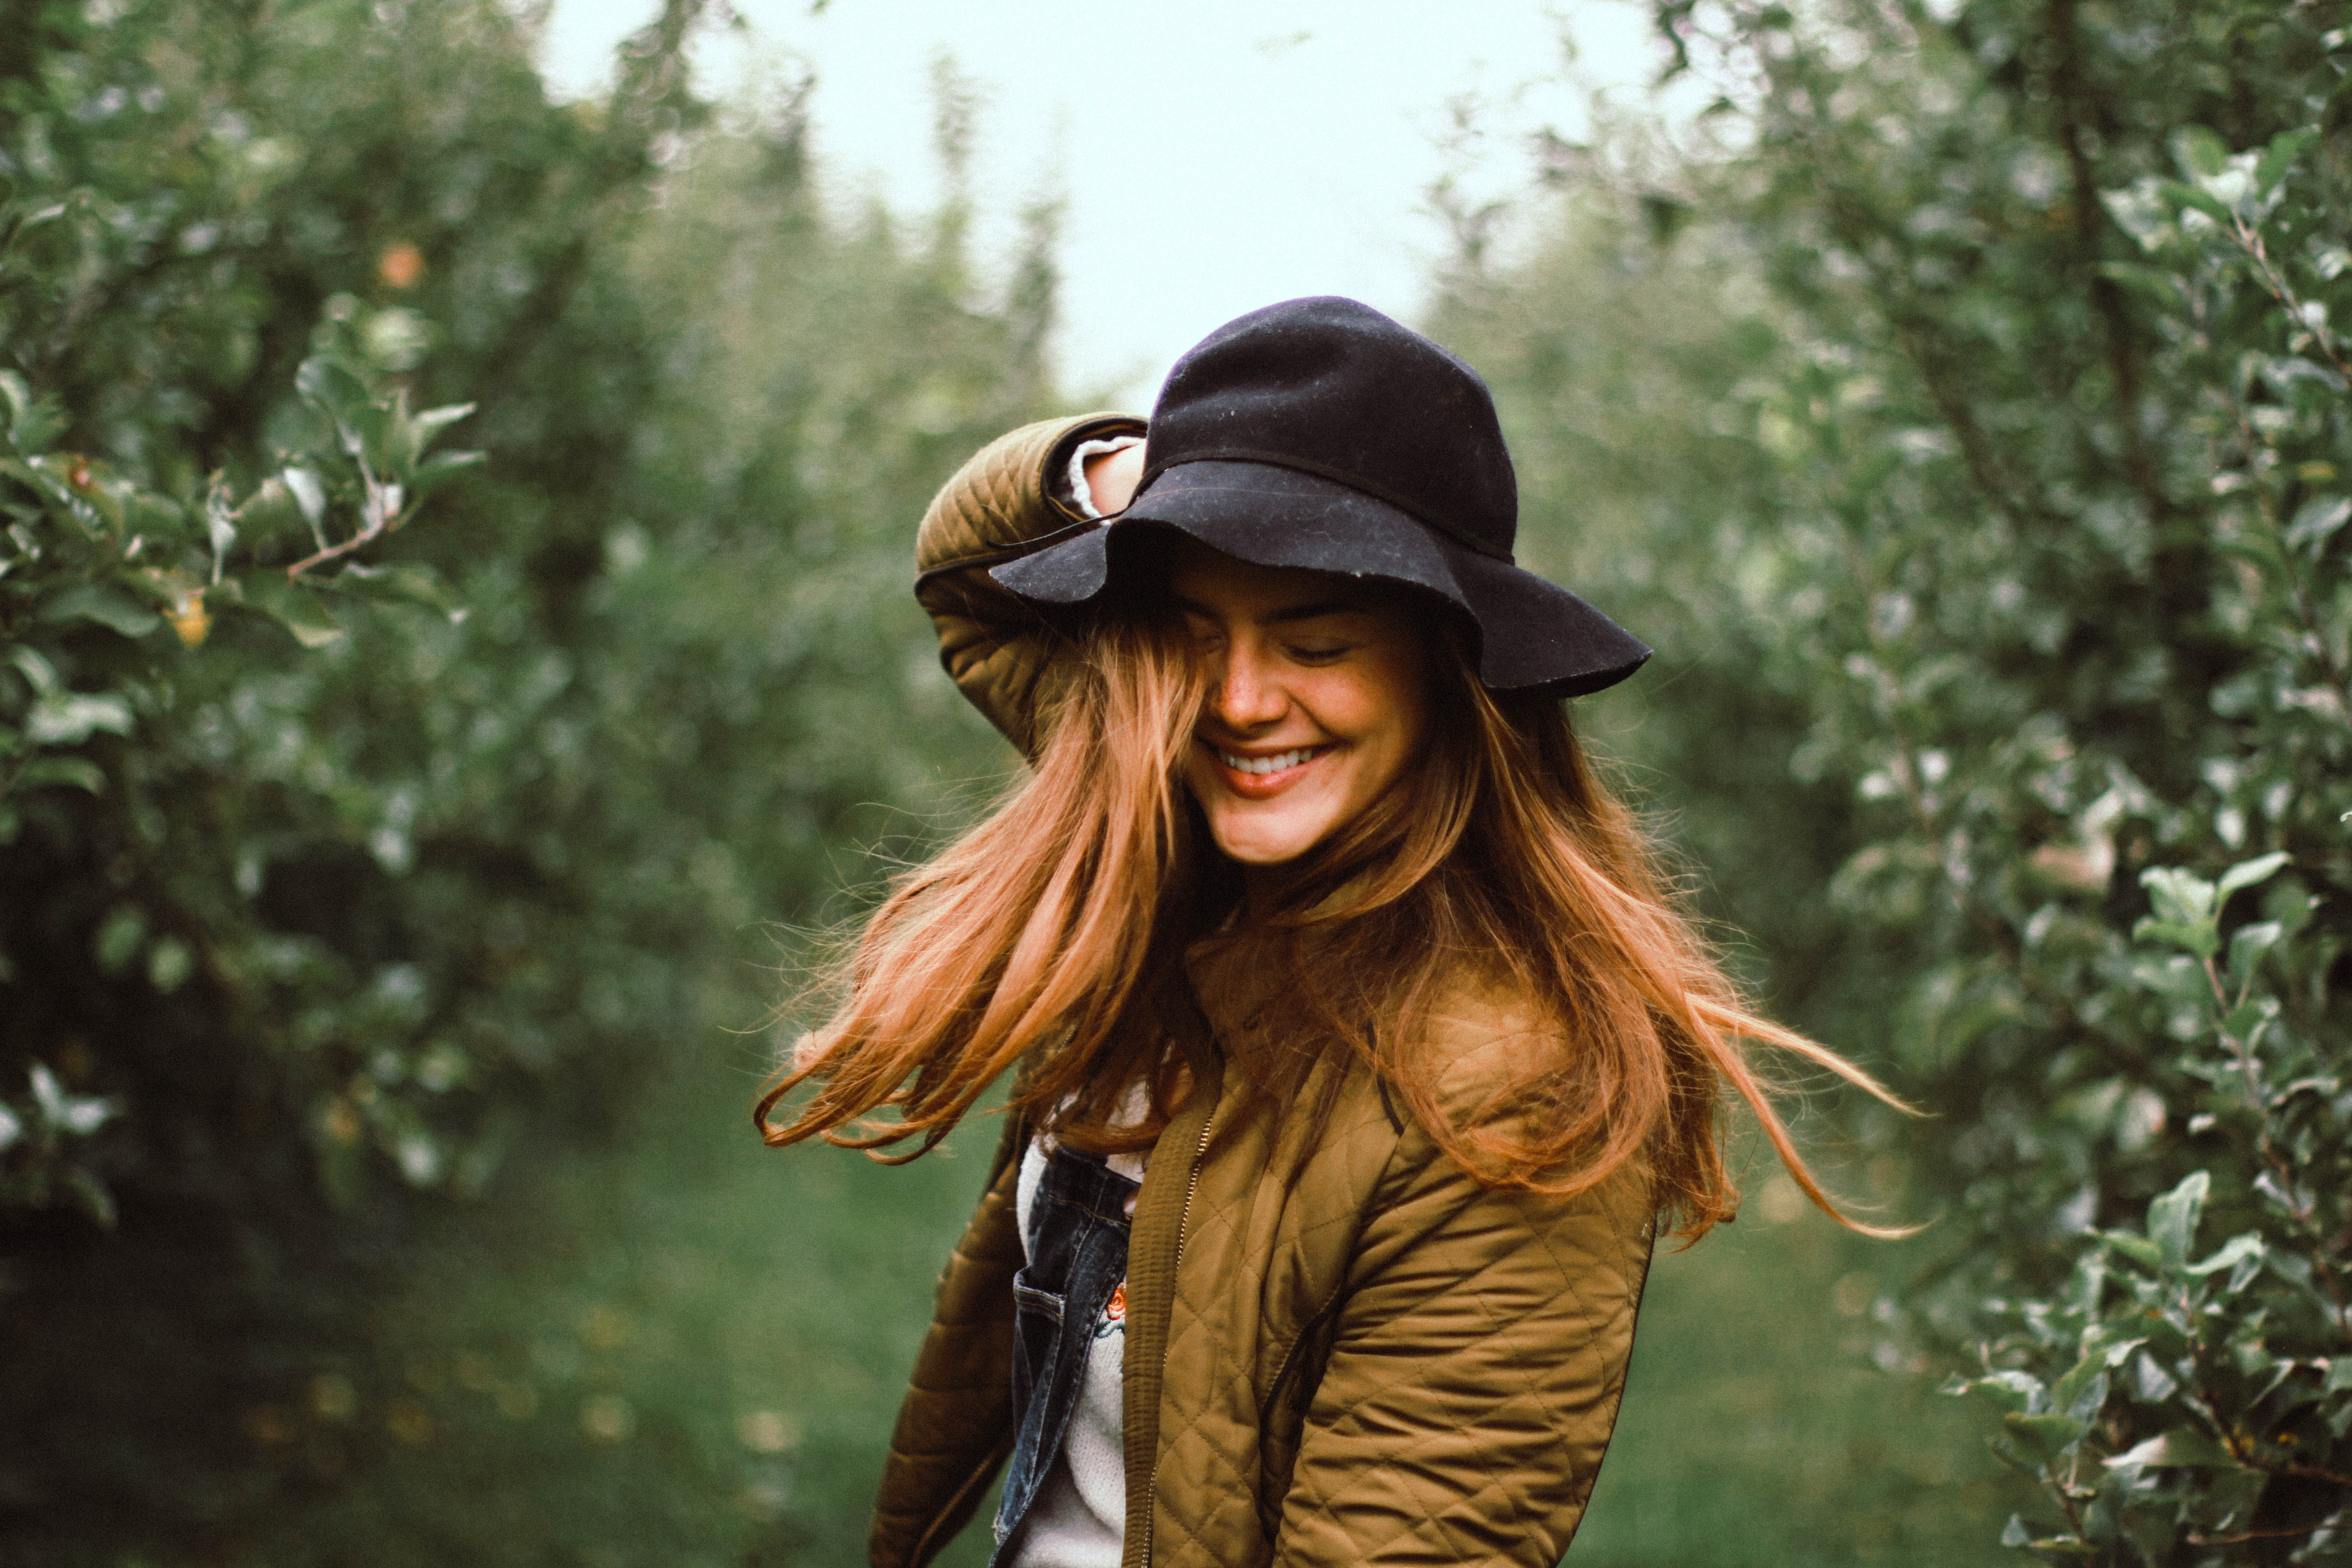 selective focus photography of woman holding her hat while smiling